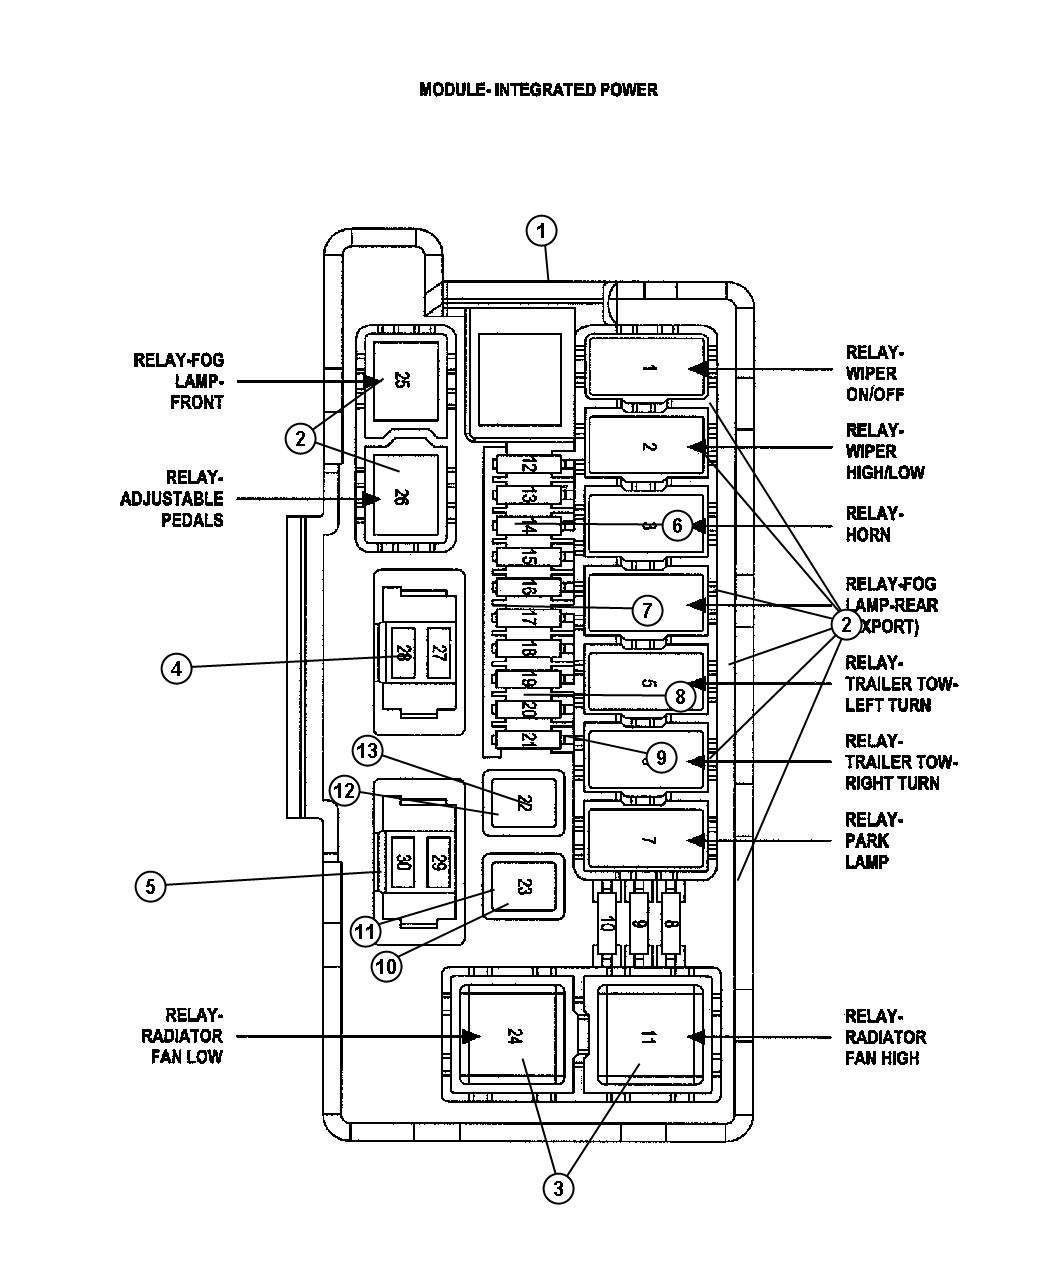 Bmw M6 Wiring Diagram likewise E60 Fuse Box furthermore 2002 325i Bmw Factory Wiring Diagrams as well Bmw E46 N42 Wiring Diagram as well 2006 Jeep Wrangler Radio Wiring Diagram. on bmw e36 engine harness diagram